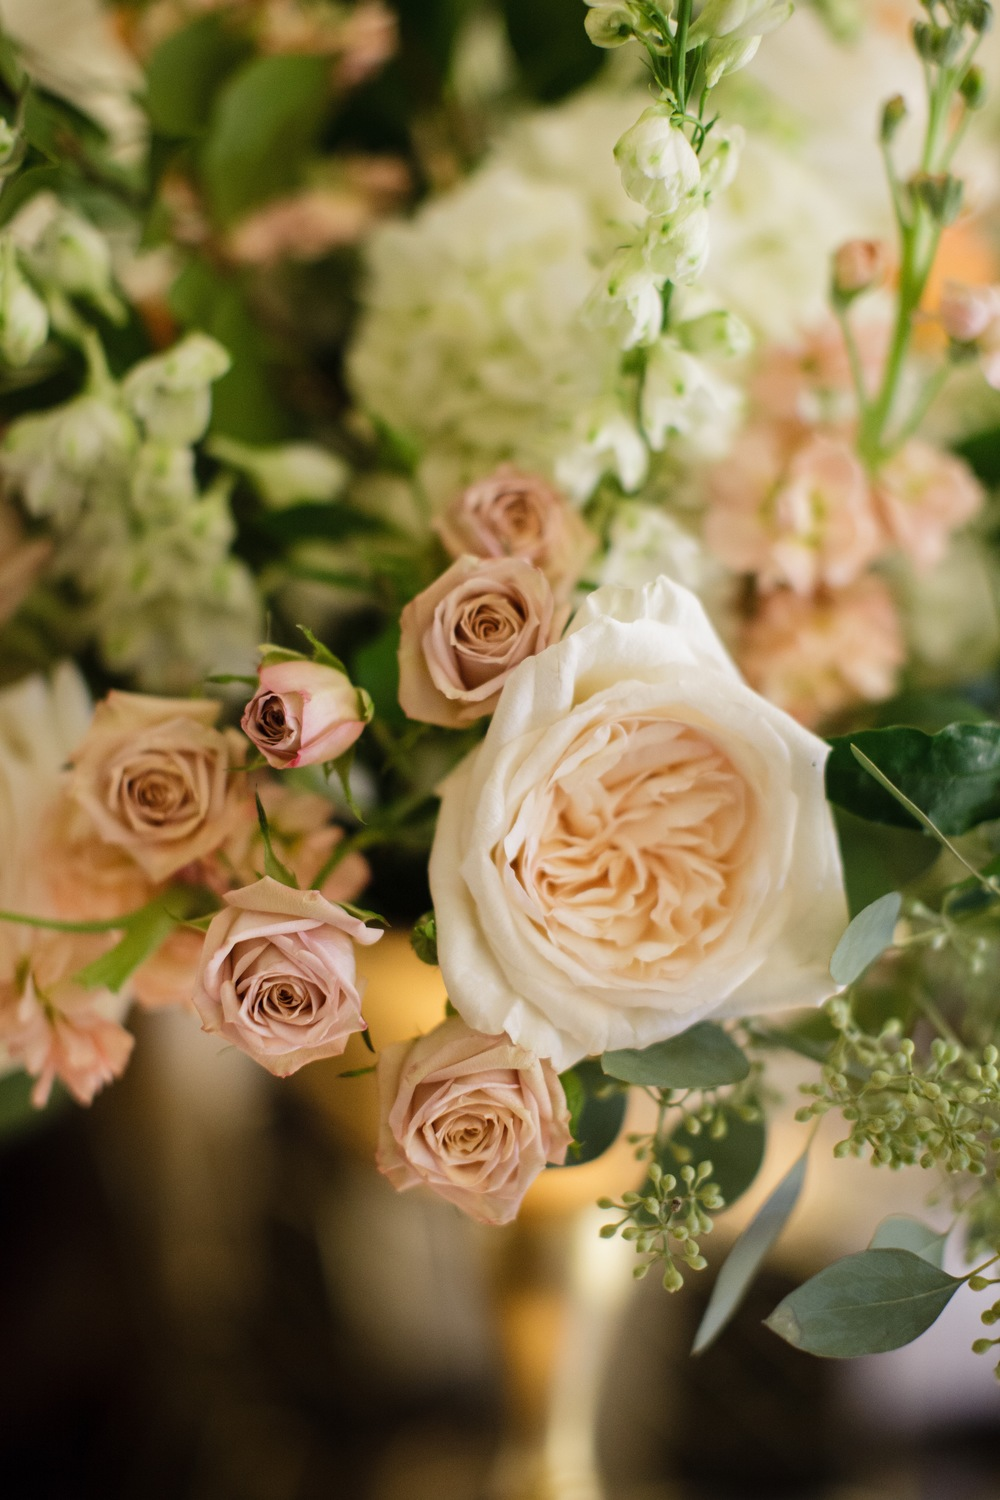 Centerpiece detail by Fleur Inc, photo by Sarah Postma Photography